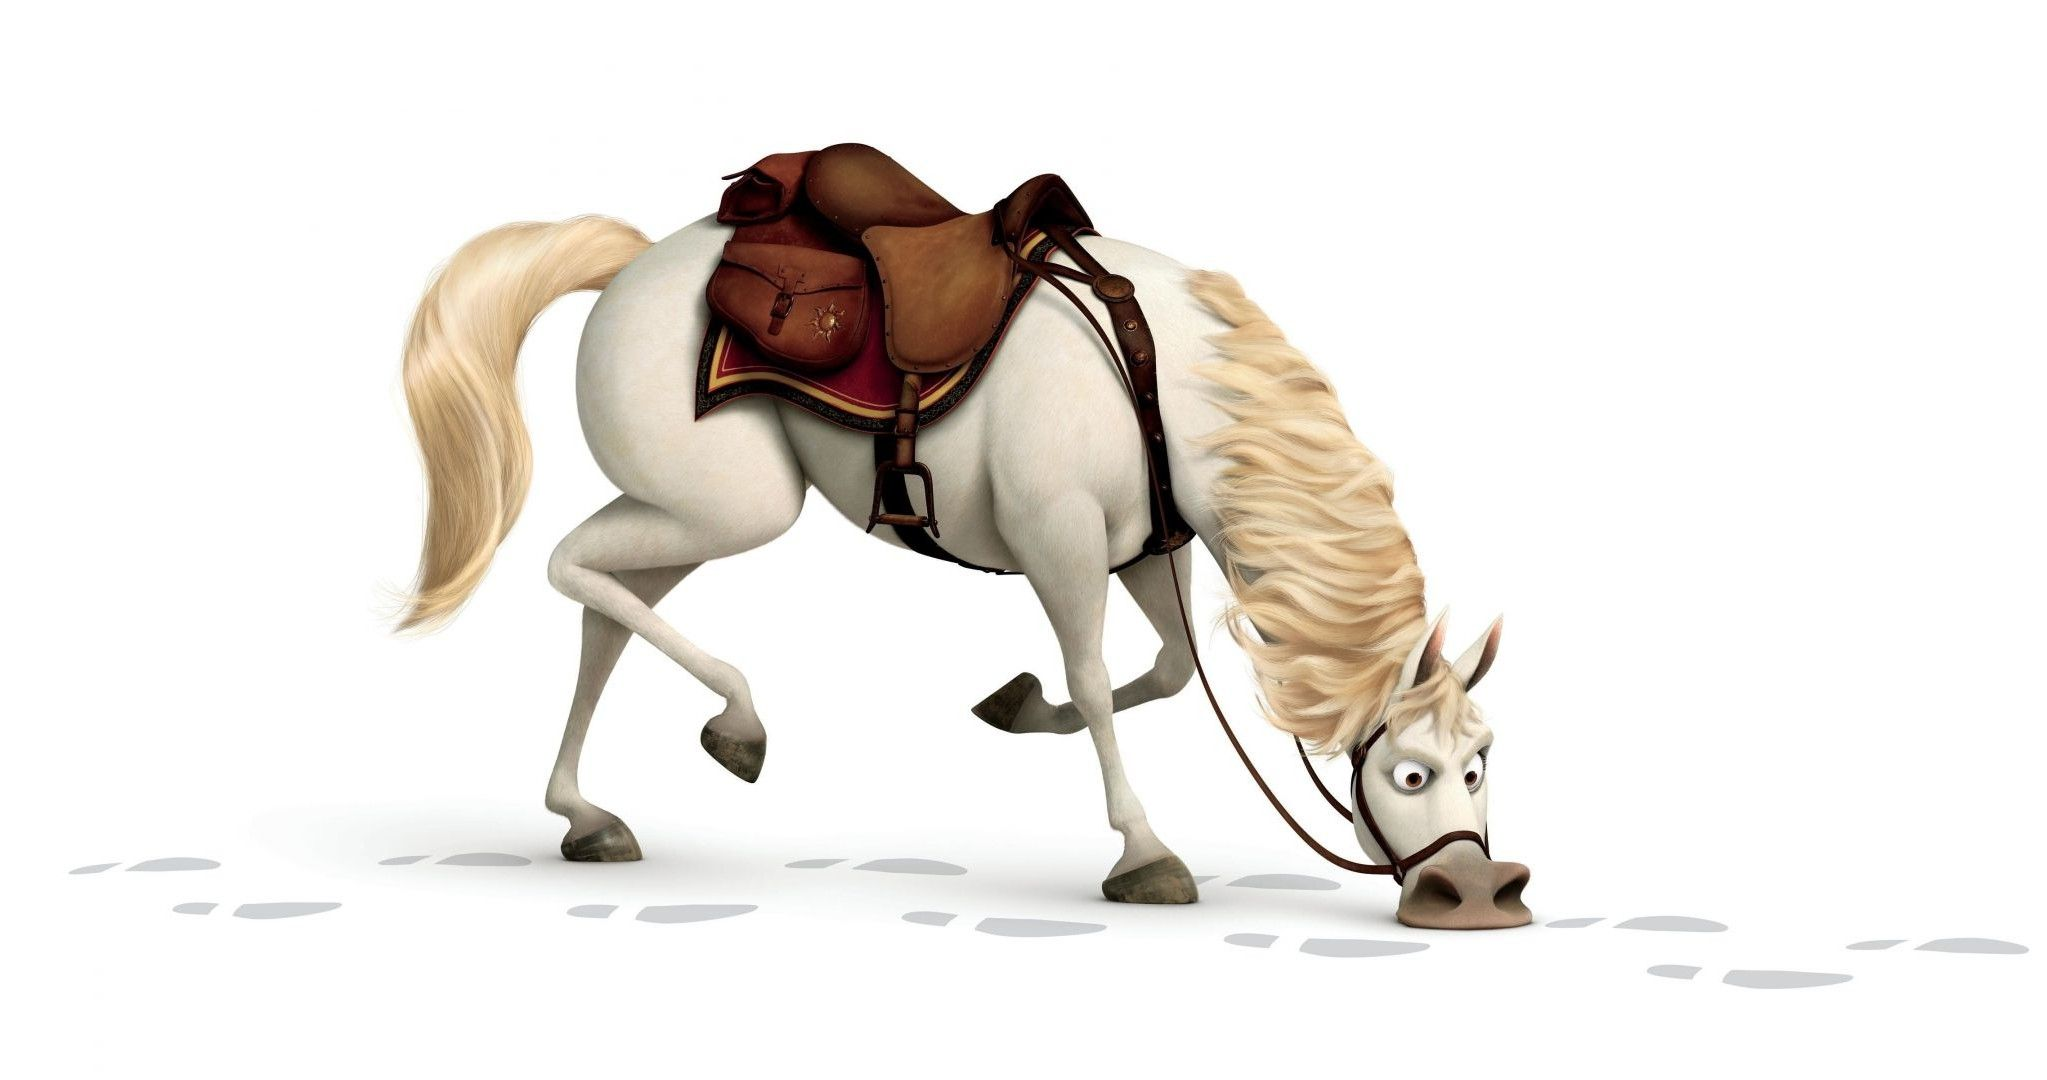 The horse from the cartoon Tangled.